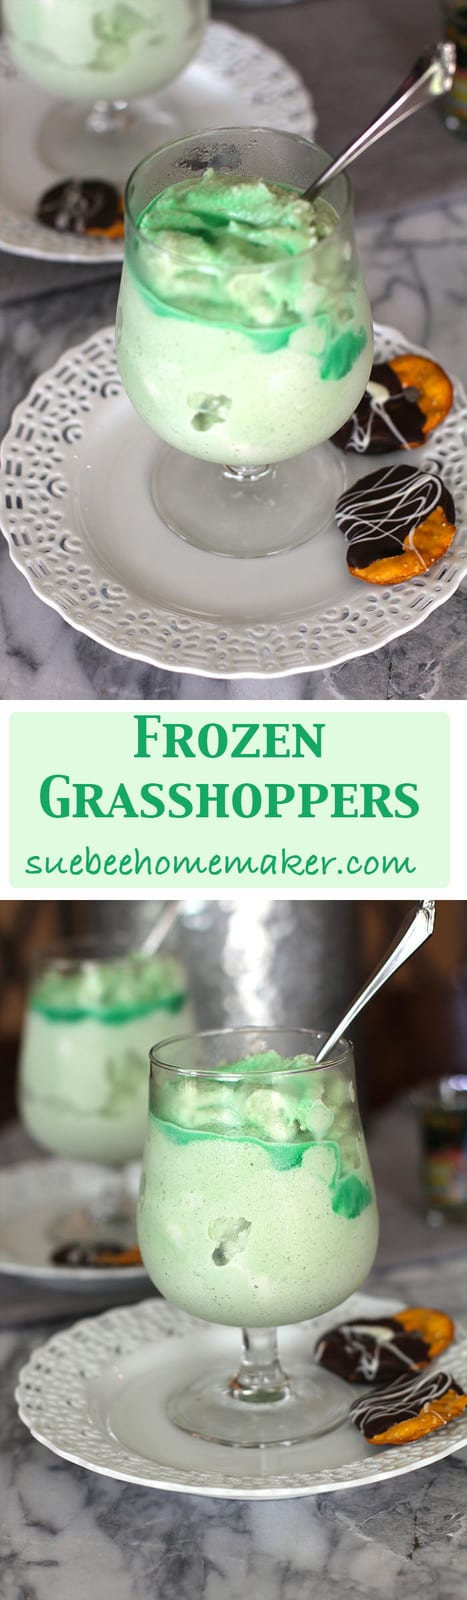 Frozen Grasshoppers -- a creamy dessert cocktail, made with ice cream, ice cubes, creme de menthe and creme de cocoa! A family favorite! | suebeehomemaker.com